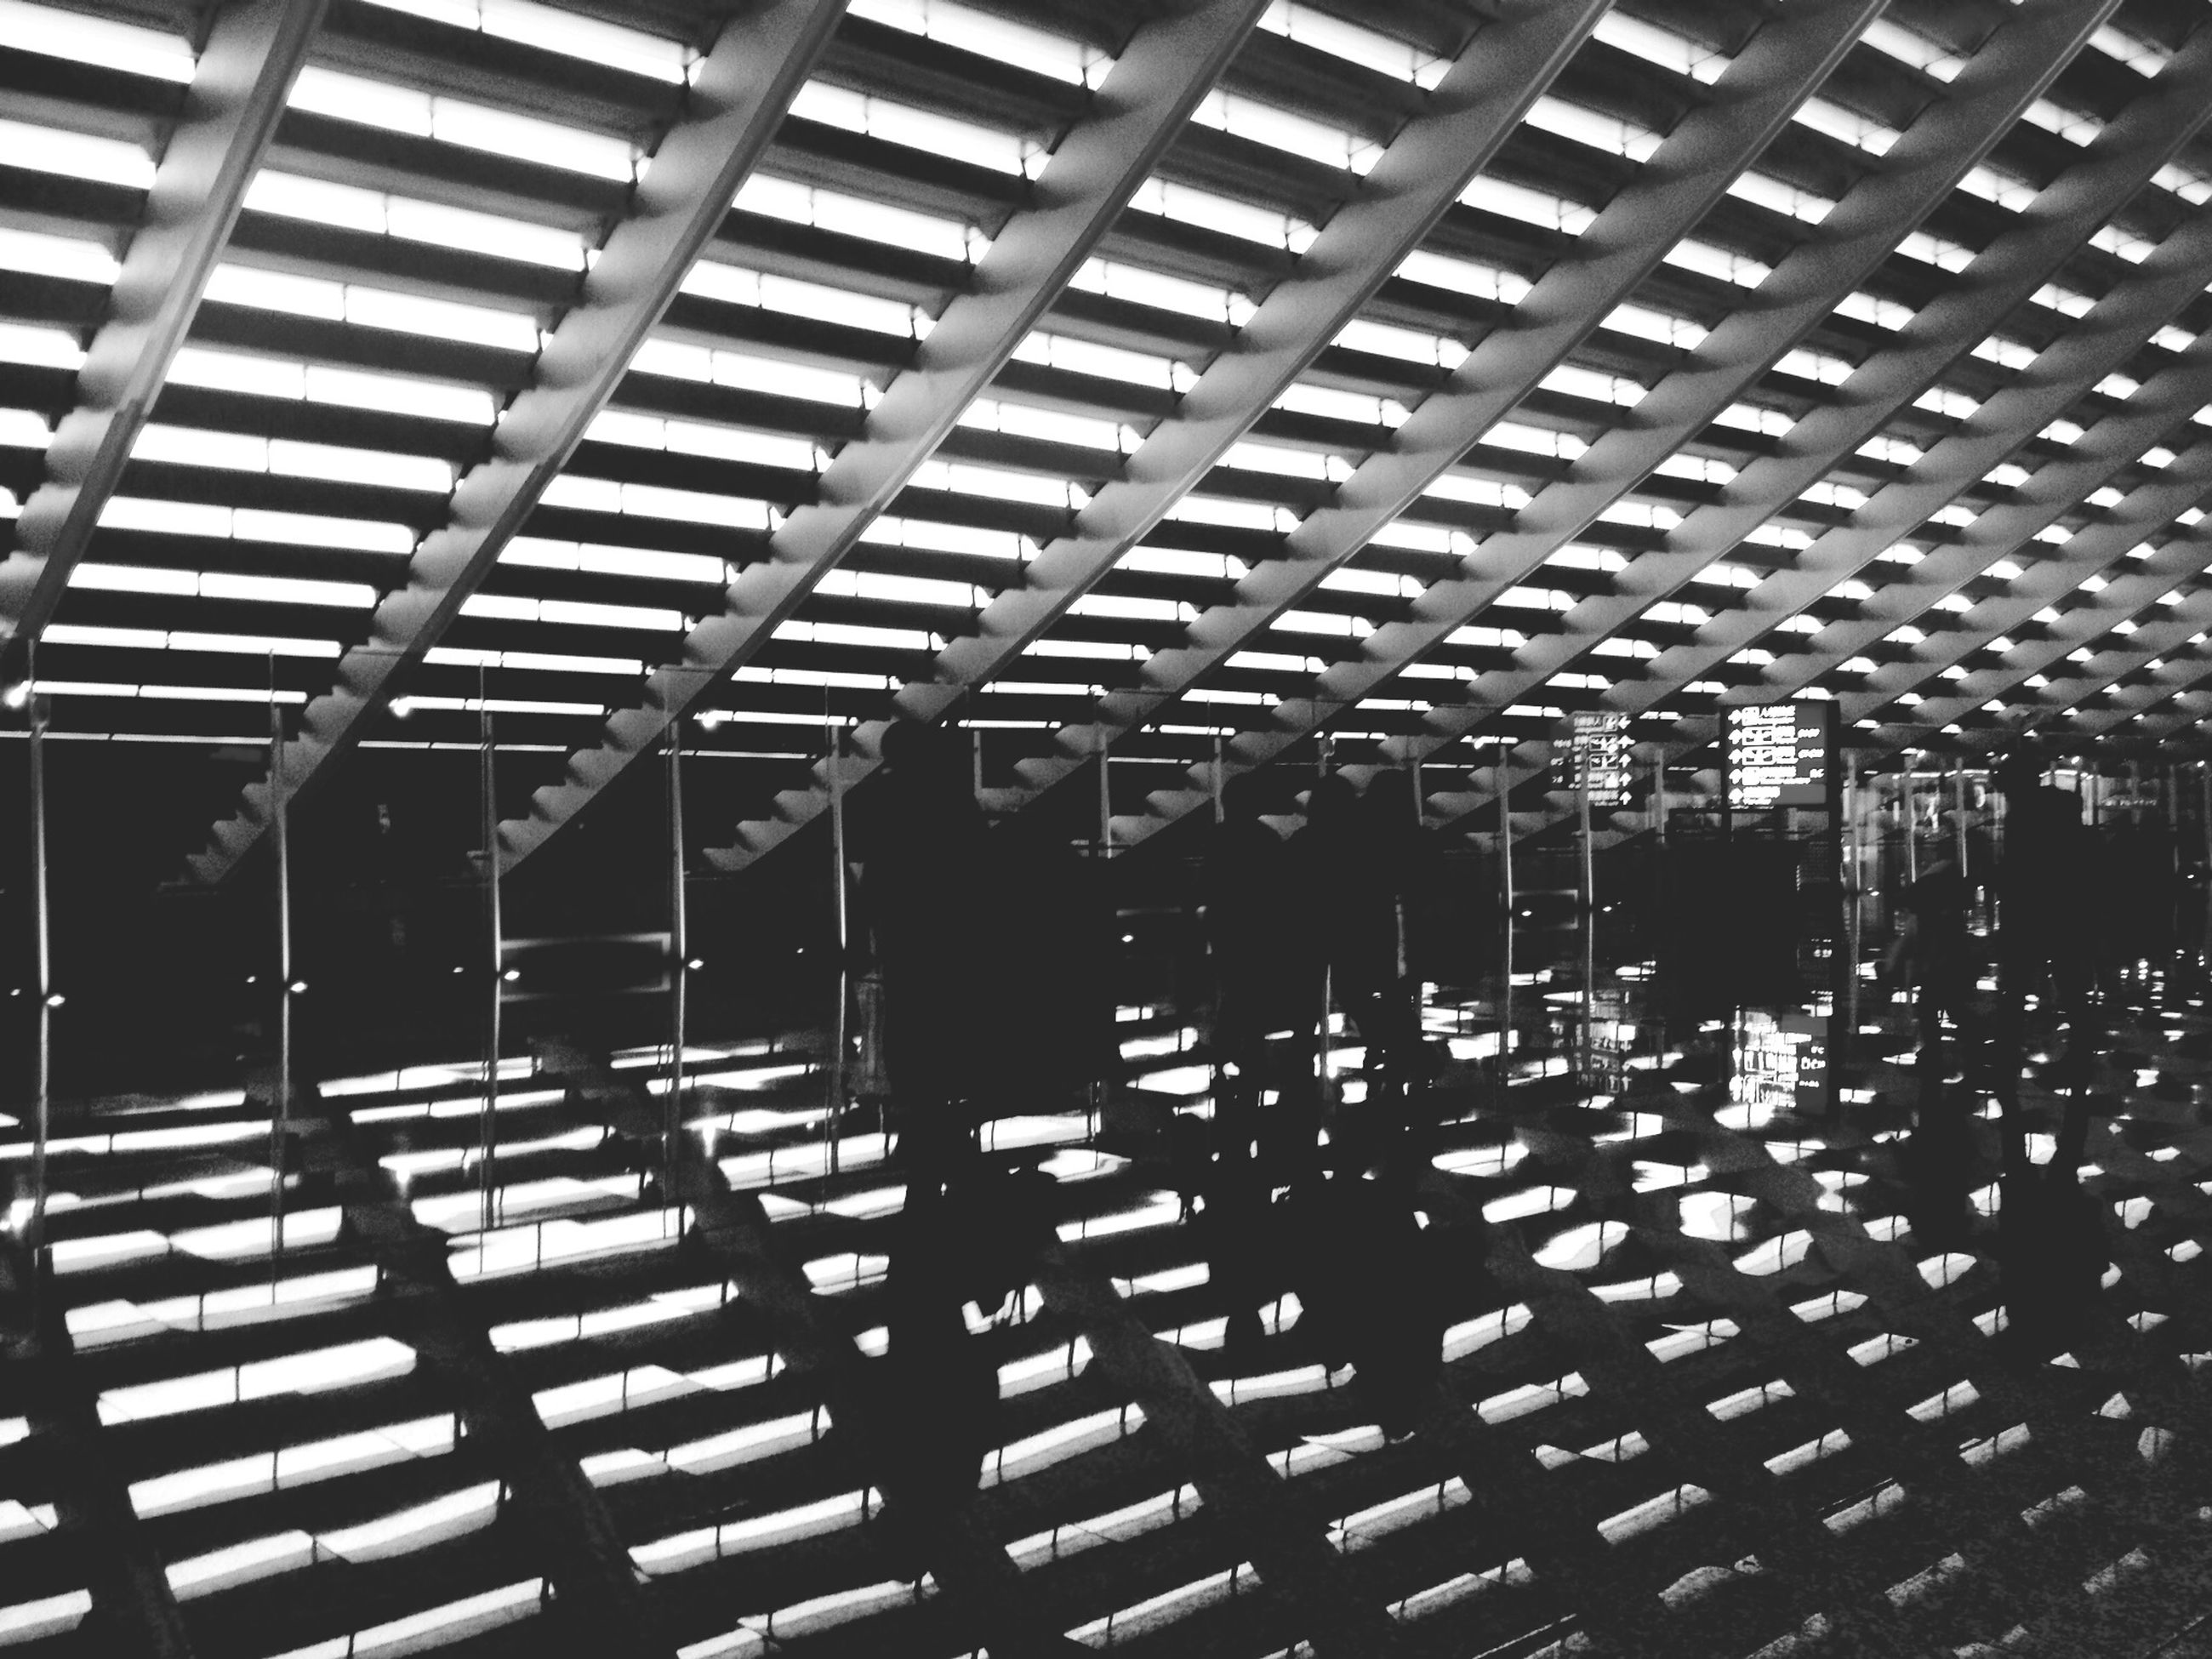 chair, indoors, empty, repetition, pattern, in a row, shadow, absence, seat, built structure, sunlight, bench, architecture, large group of objects, ceiling, arrangement, day, full frame, wood - material, table